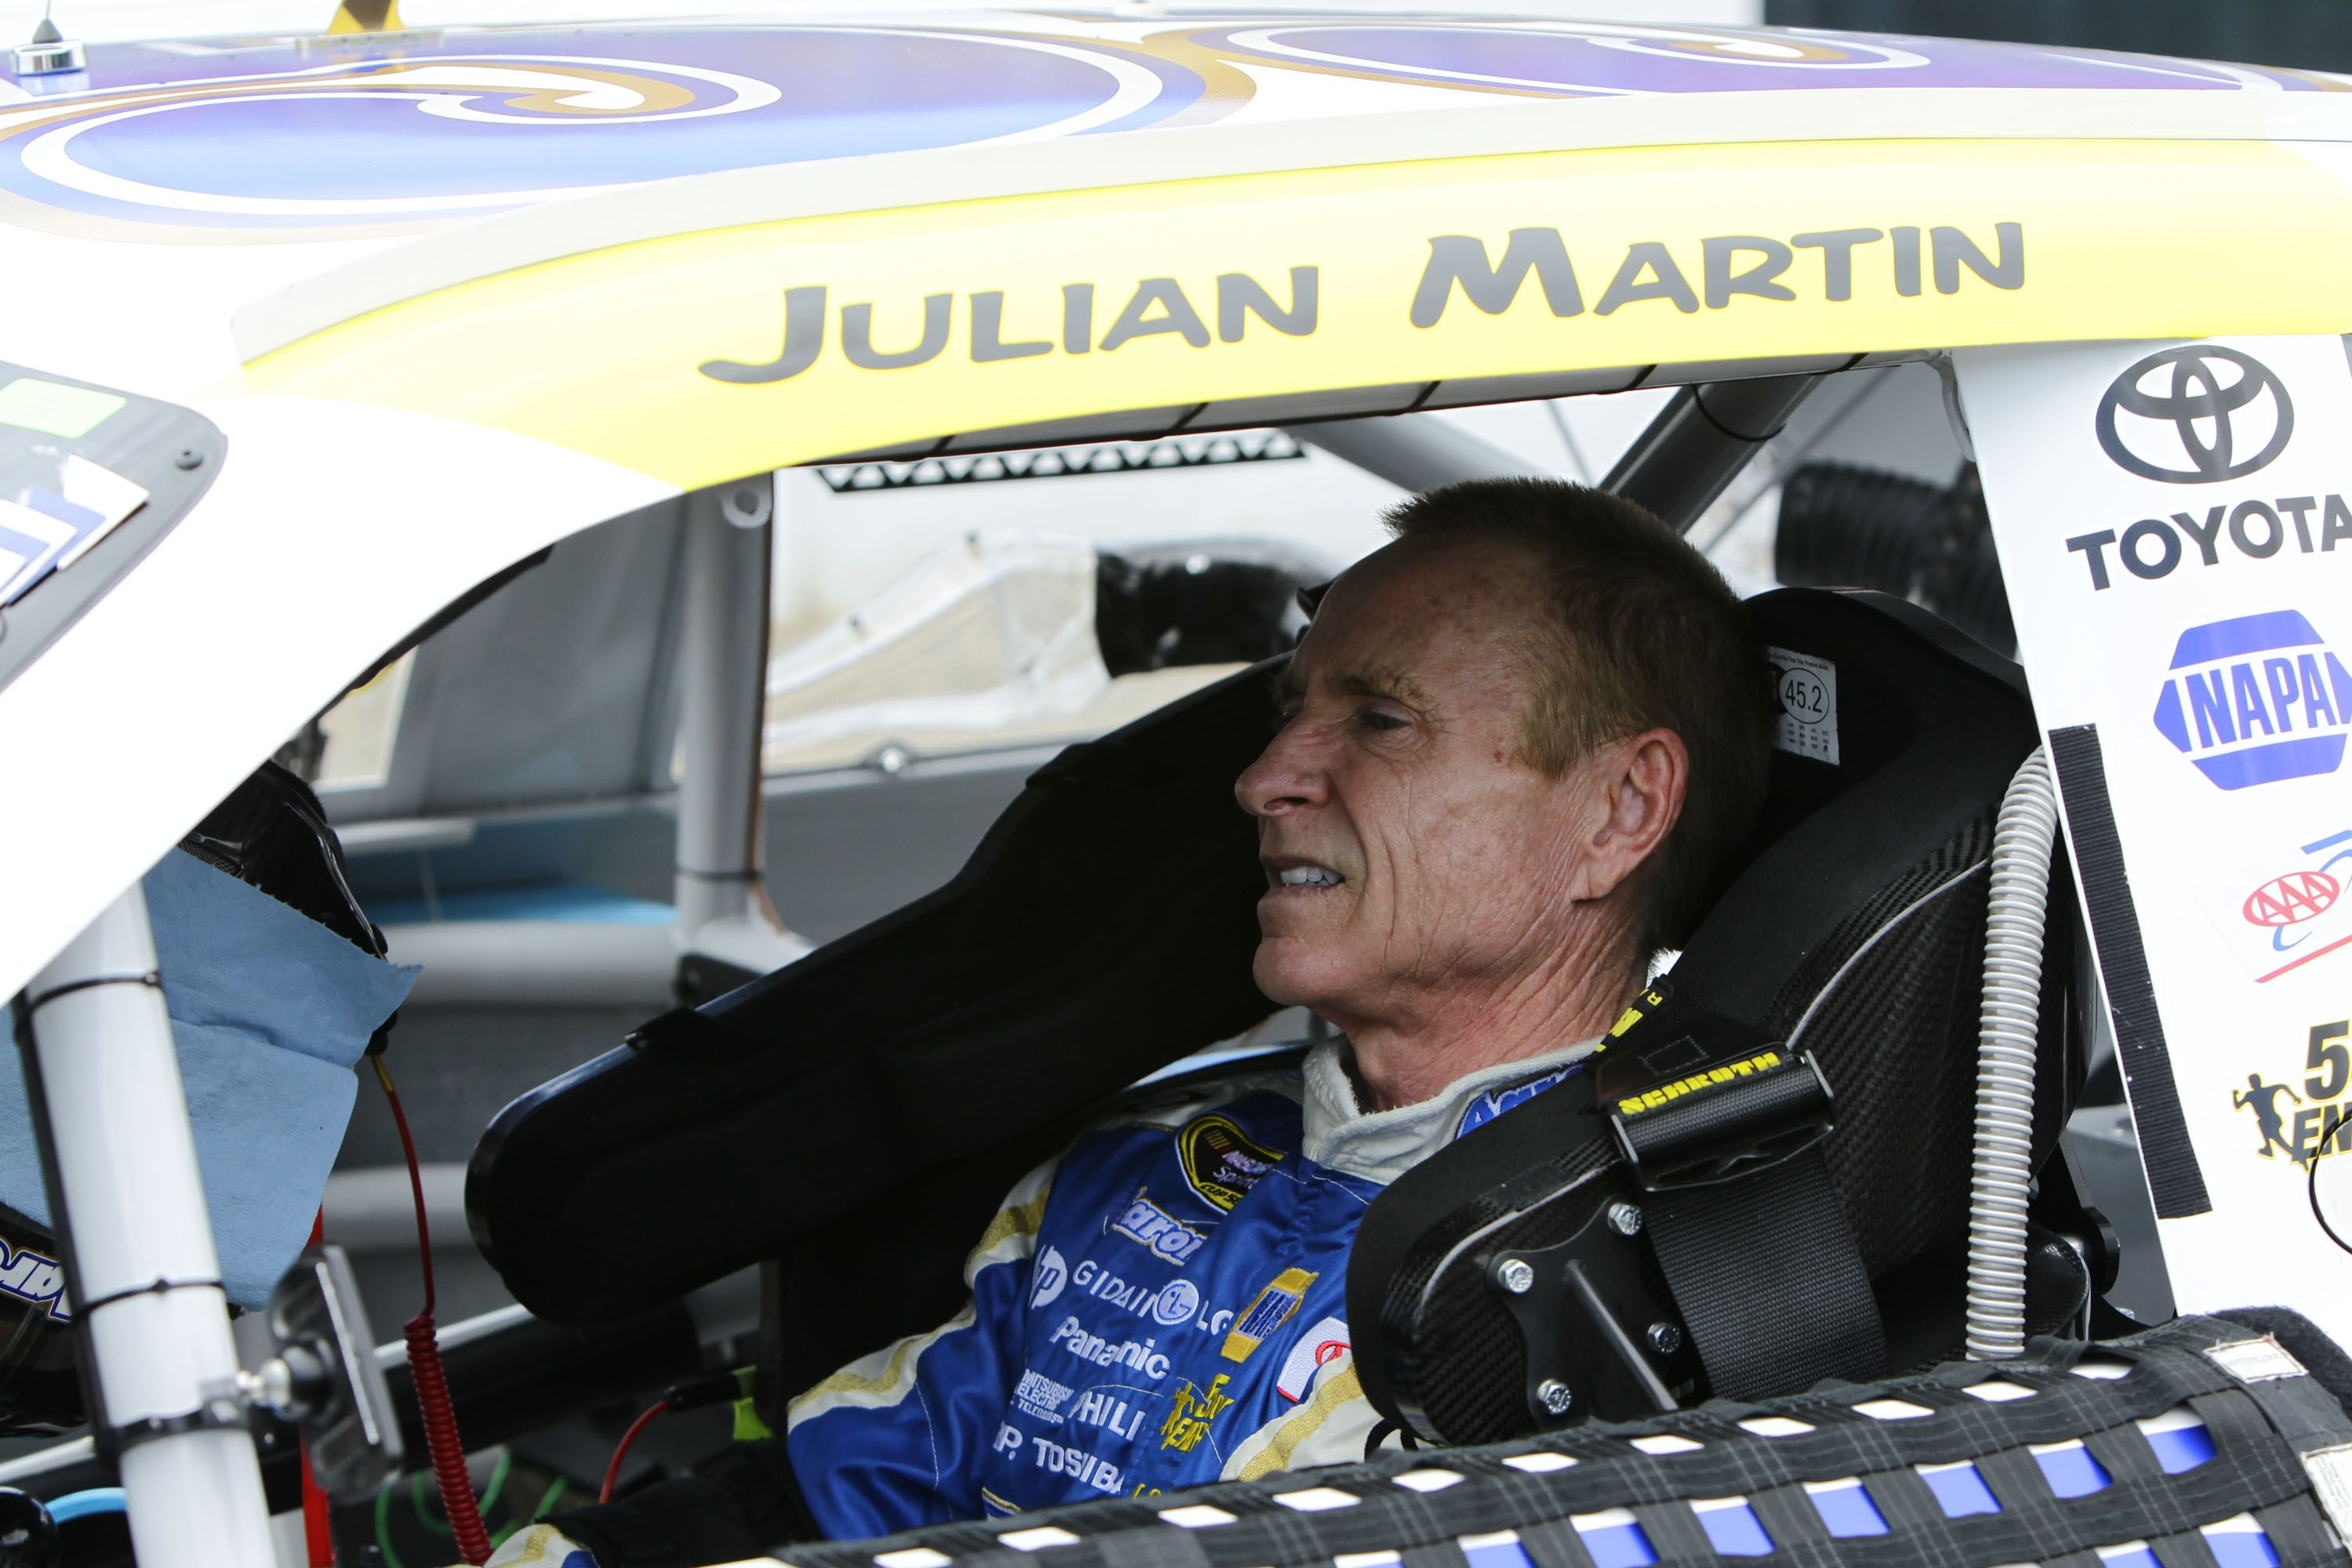 Mark Martin honors his Father above the door of his Aaron's Dream Machine.